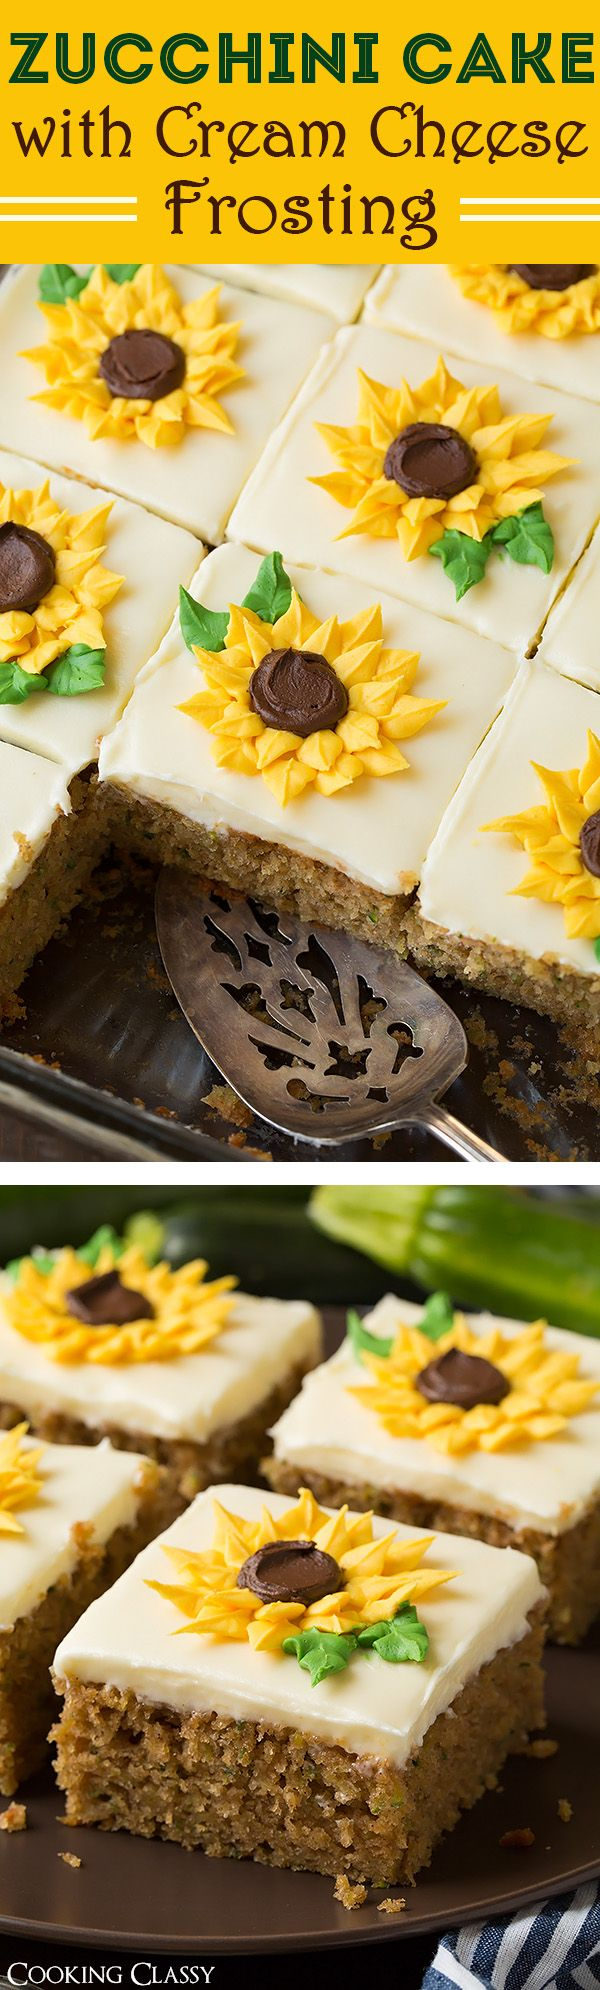 Zucchini Cake with Cream Cheese Frosting | Cooking Classy